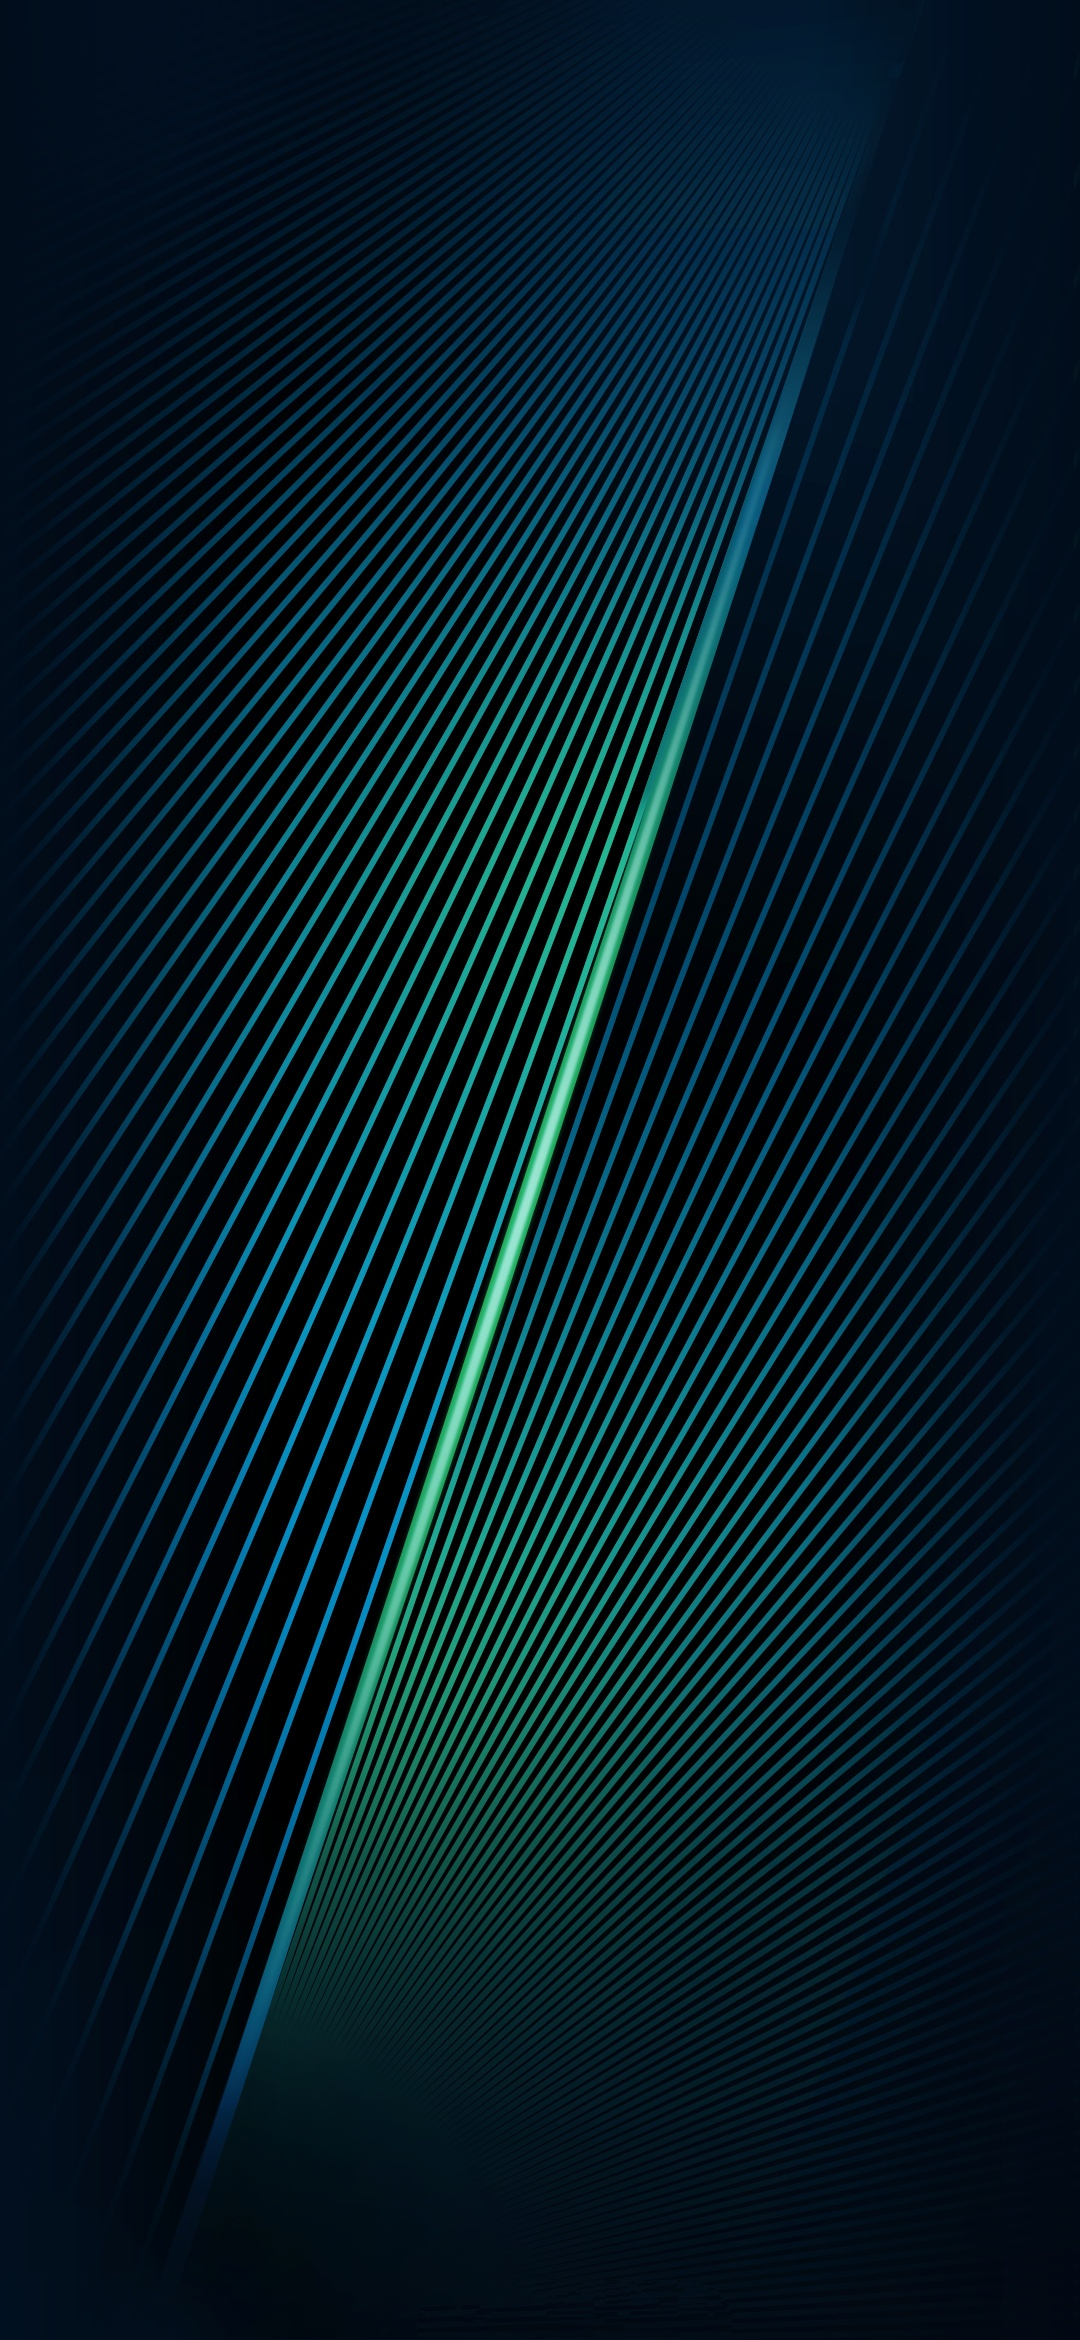 Vivo iQOO Stock Wallpaper 01   [1080x2340] 1080x2340